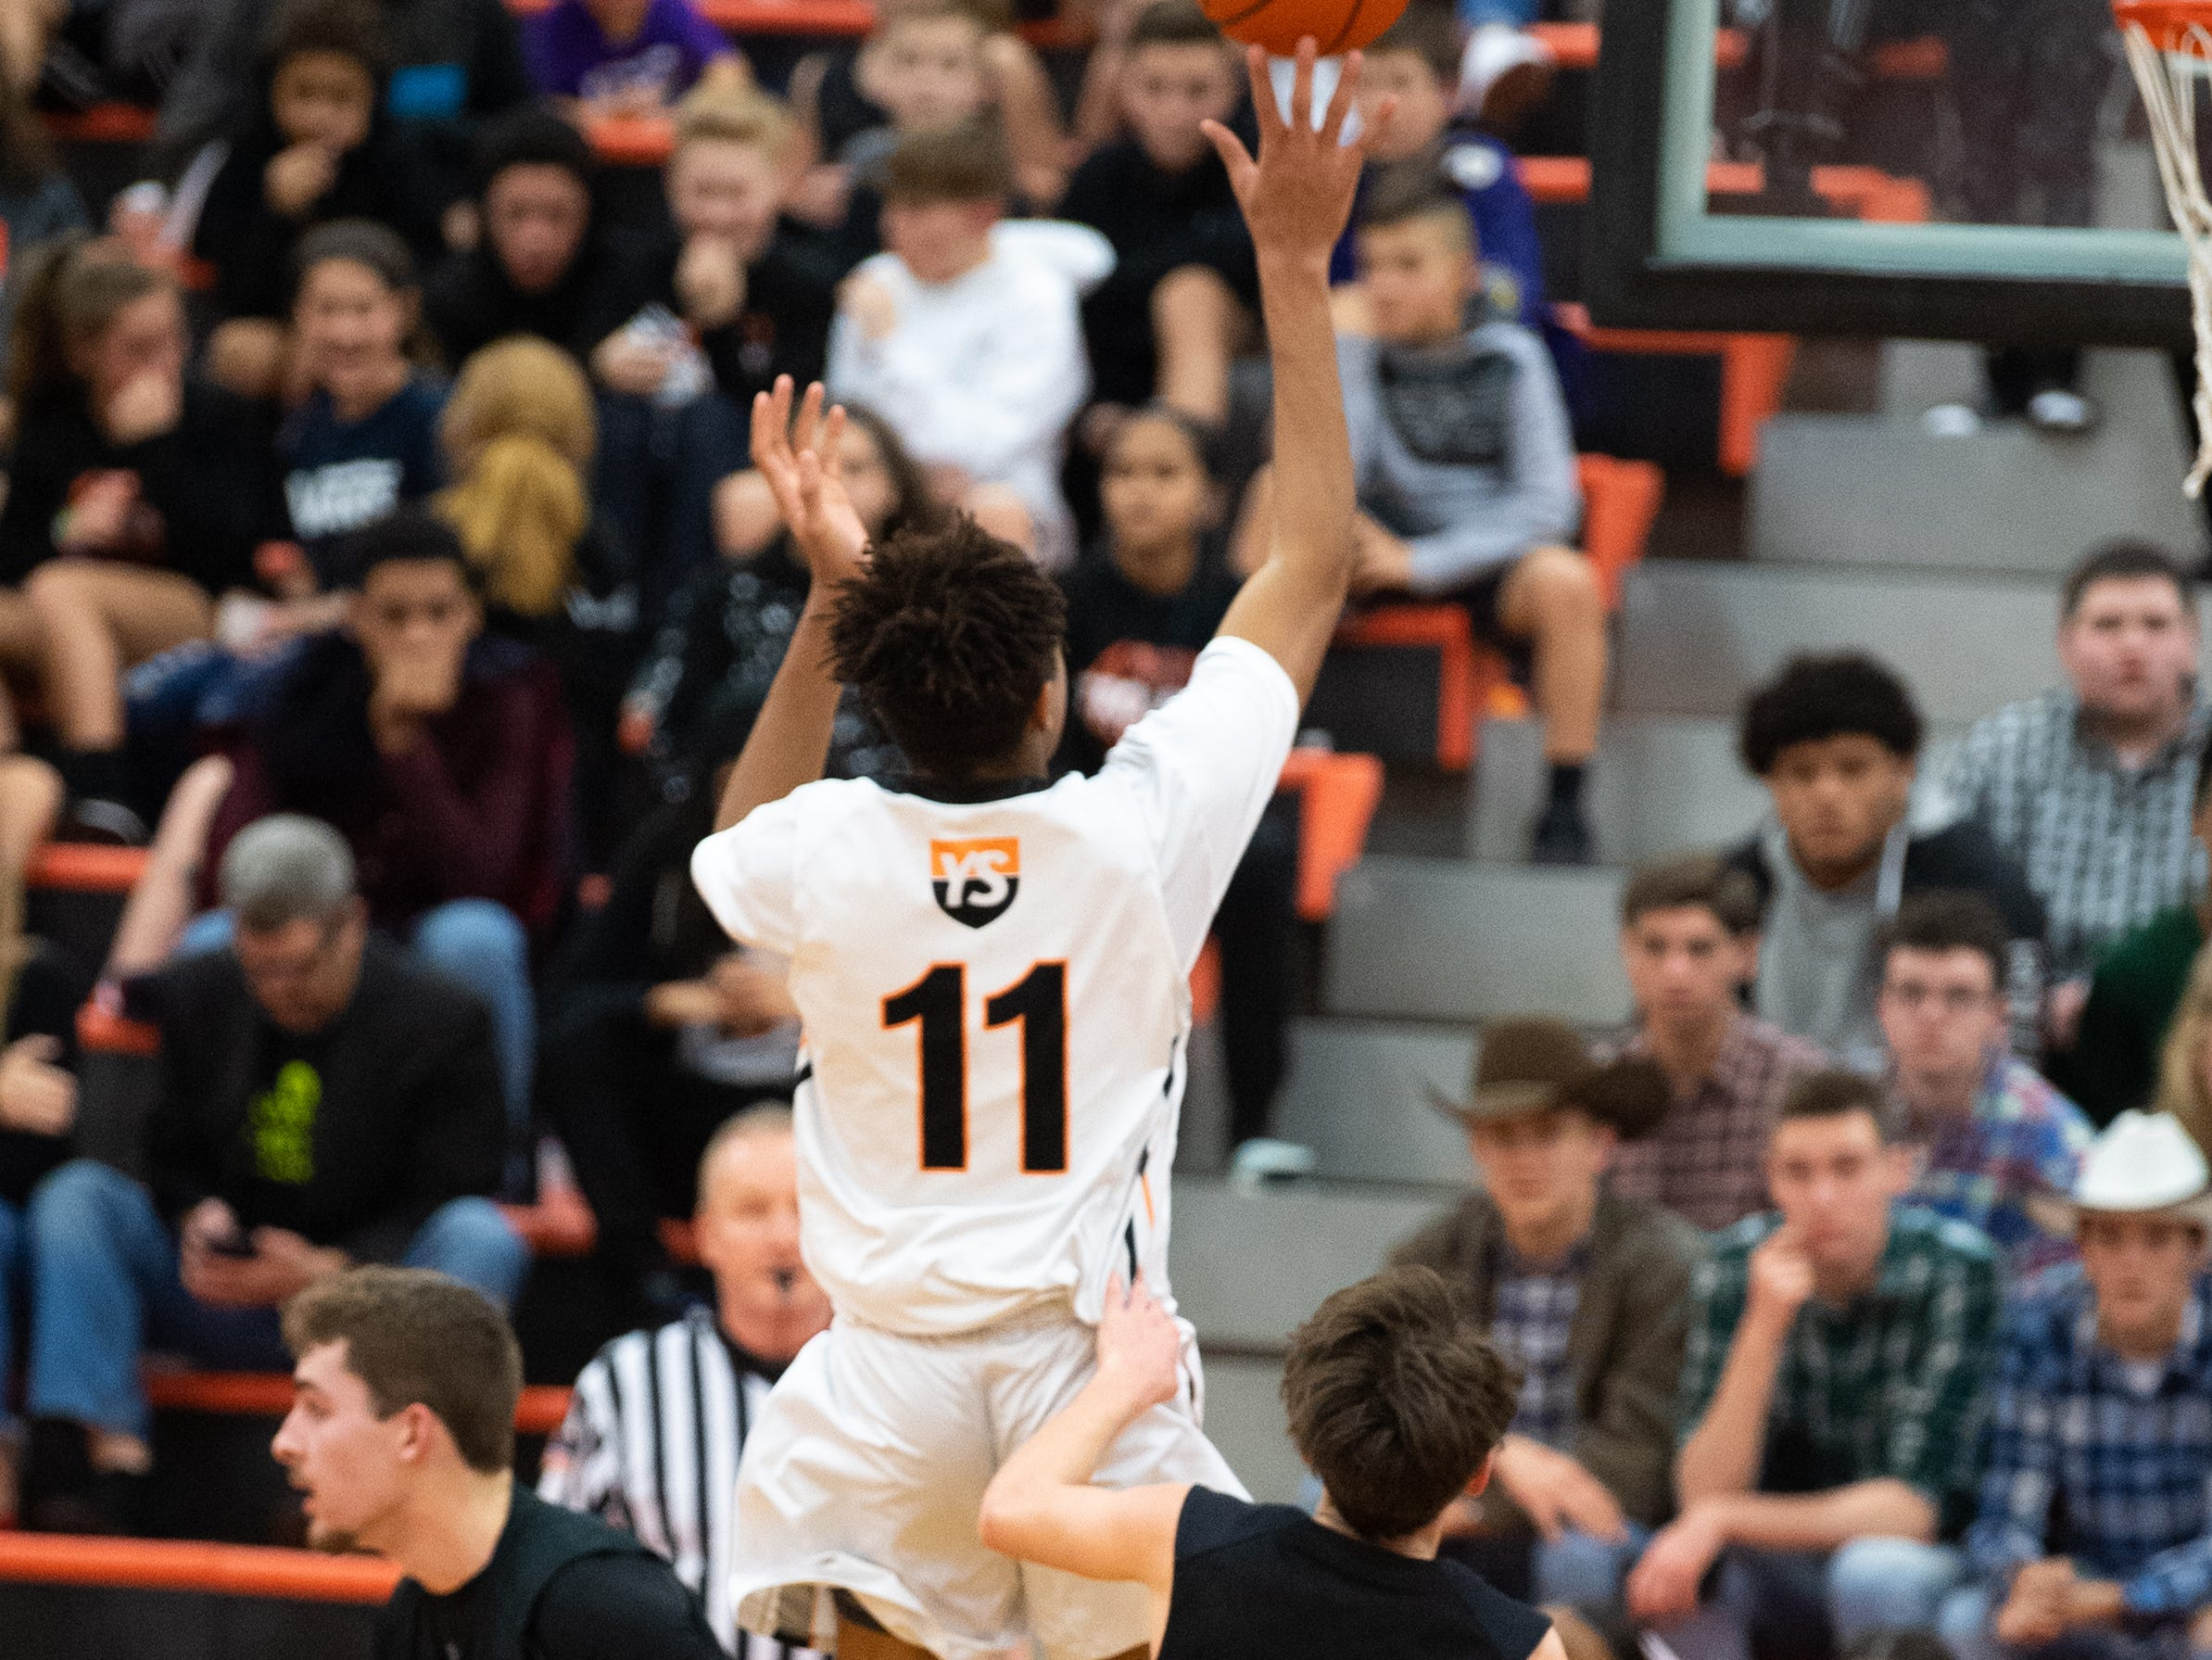 Alon Gorham (11) throws up the shot before Carter Day (55) can get to him during the boys' basketball game between York Suburban and Kennard-Dale at, January, 4, 2019. The Rams beat the Trojans 65 to 63 in overtime.